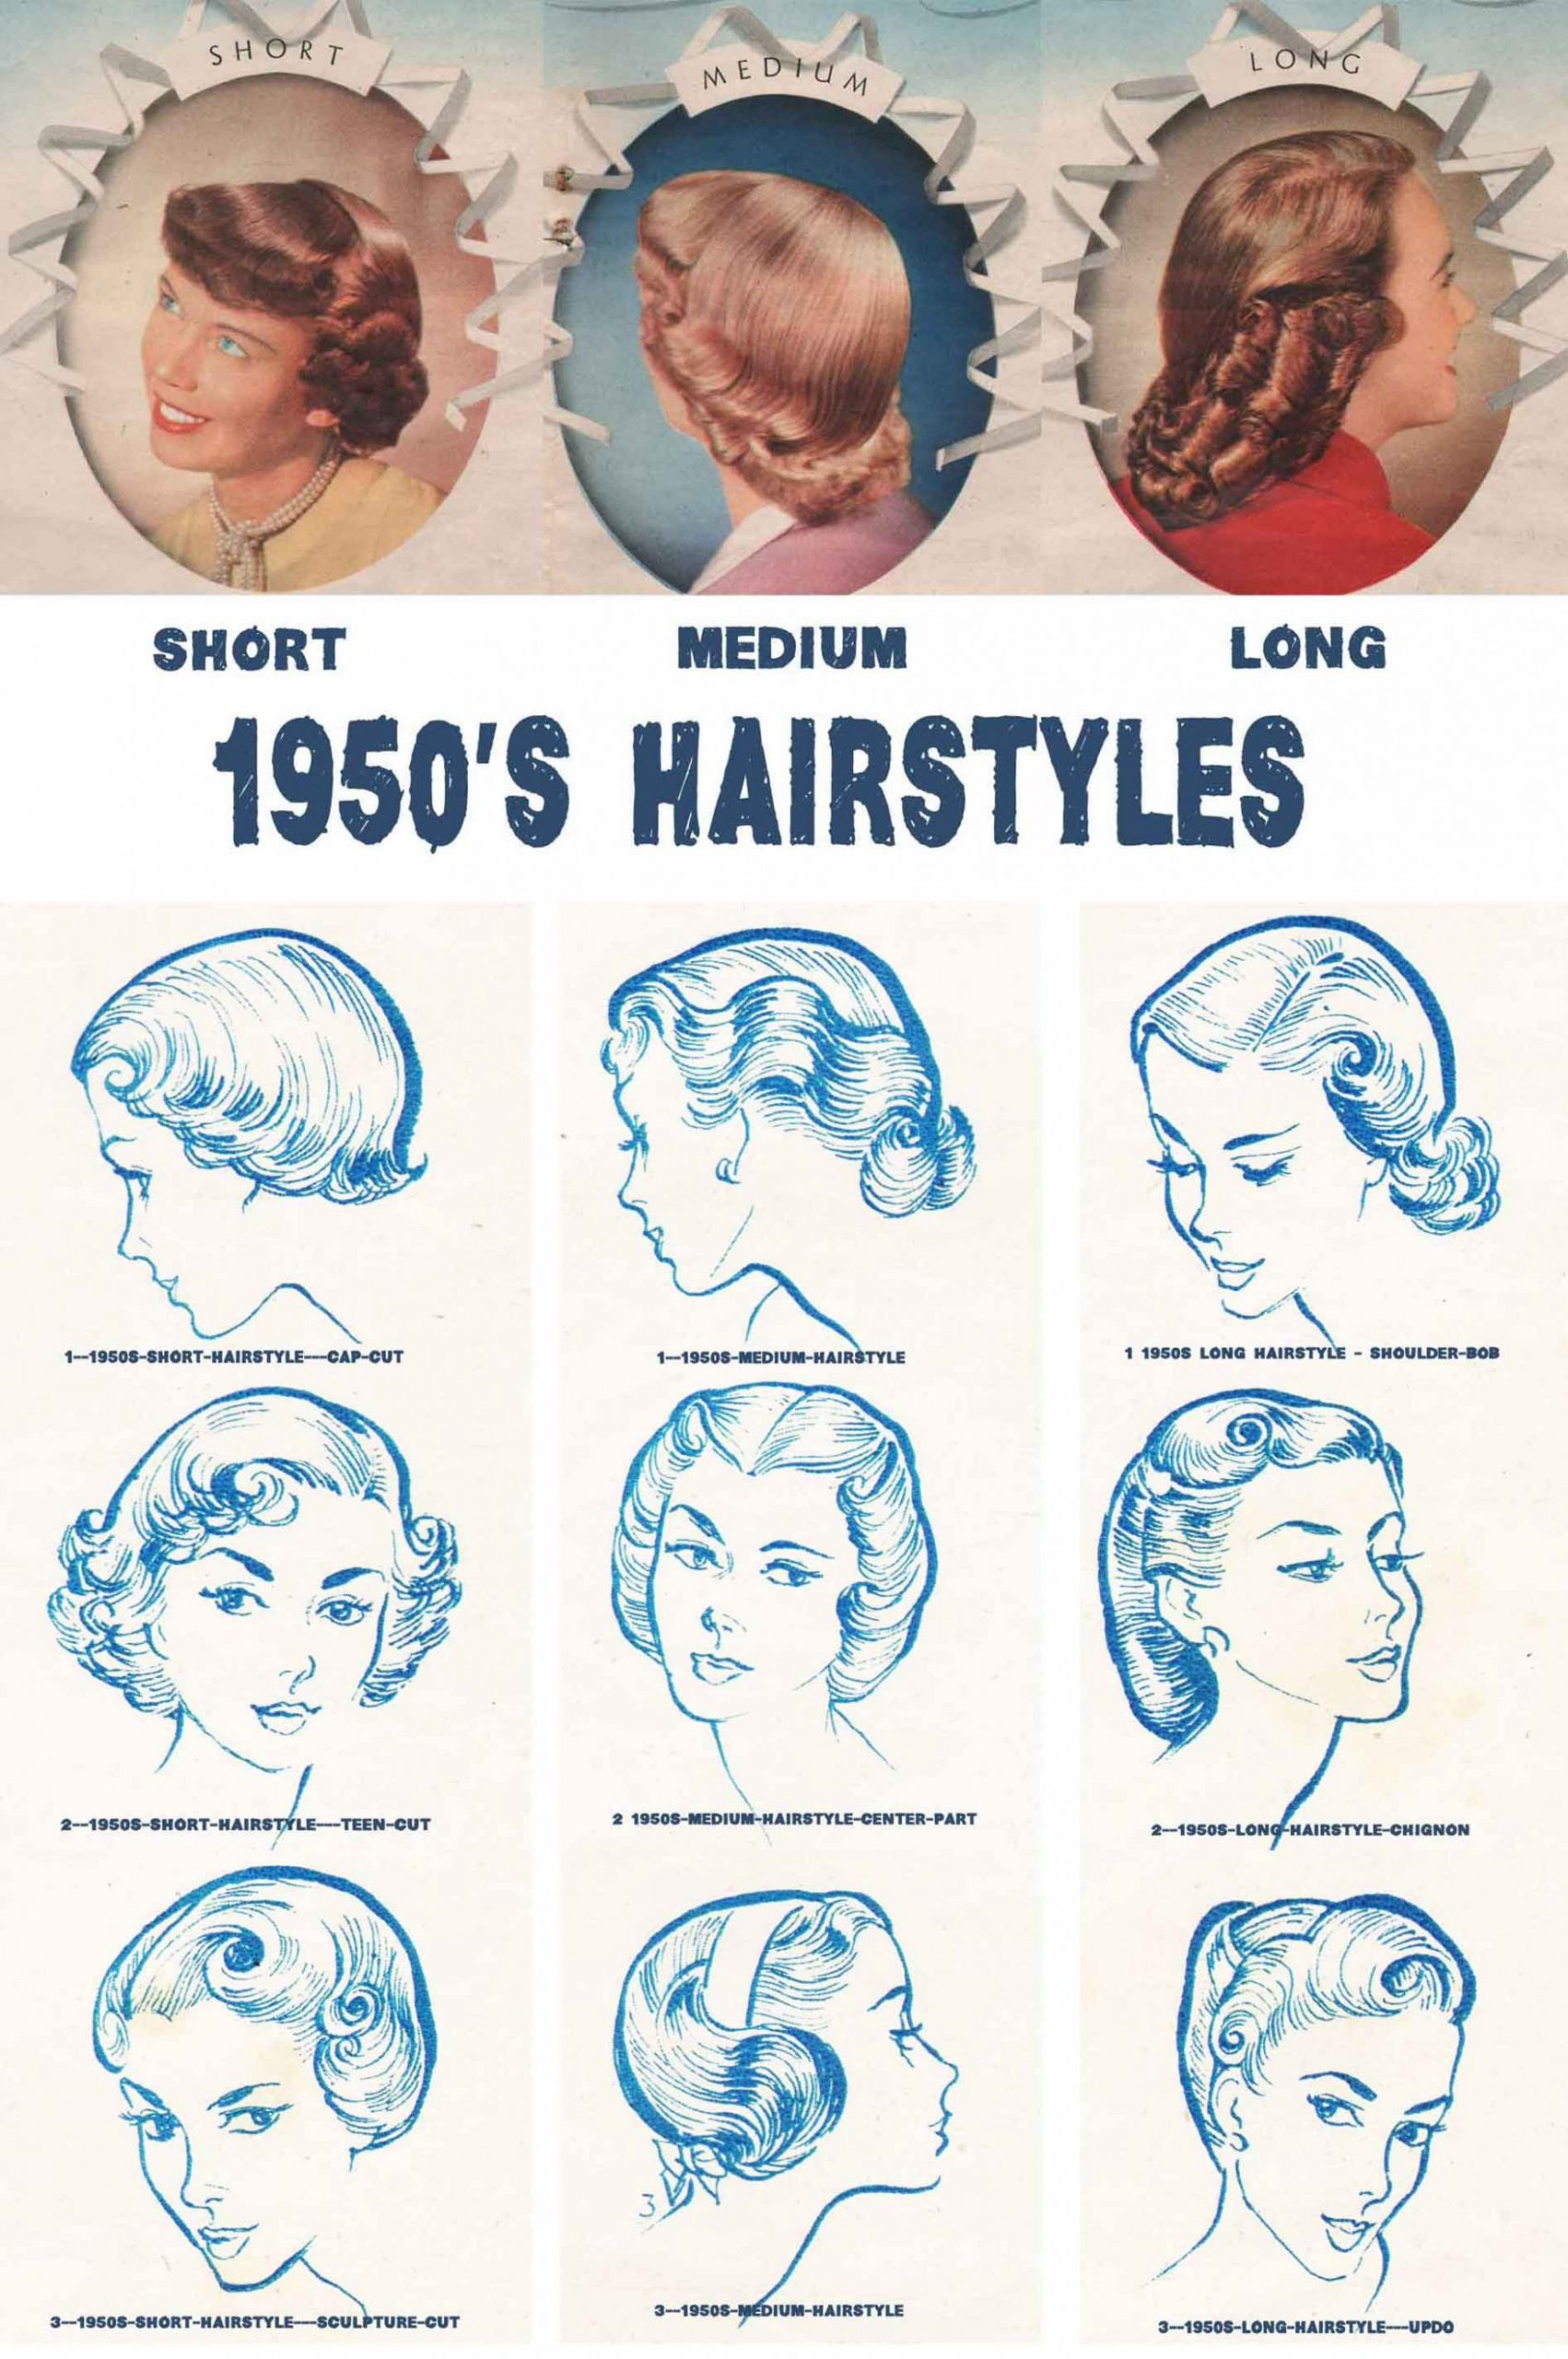 12s Hairstyles Chart For Your Hair Length Glamour Daze 1950S Hairstyles For Short Hair